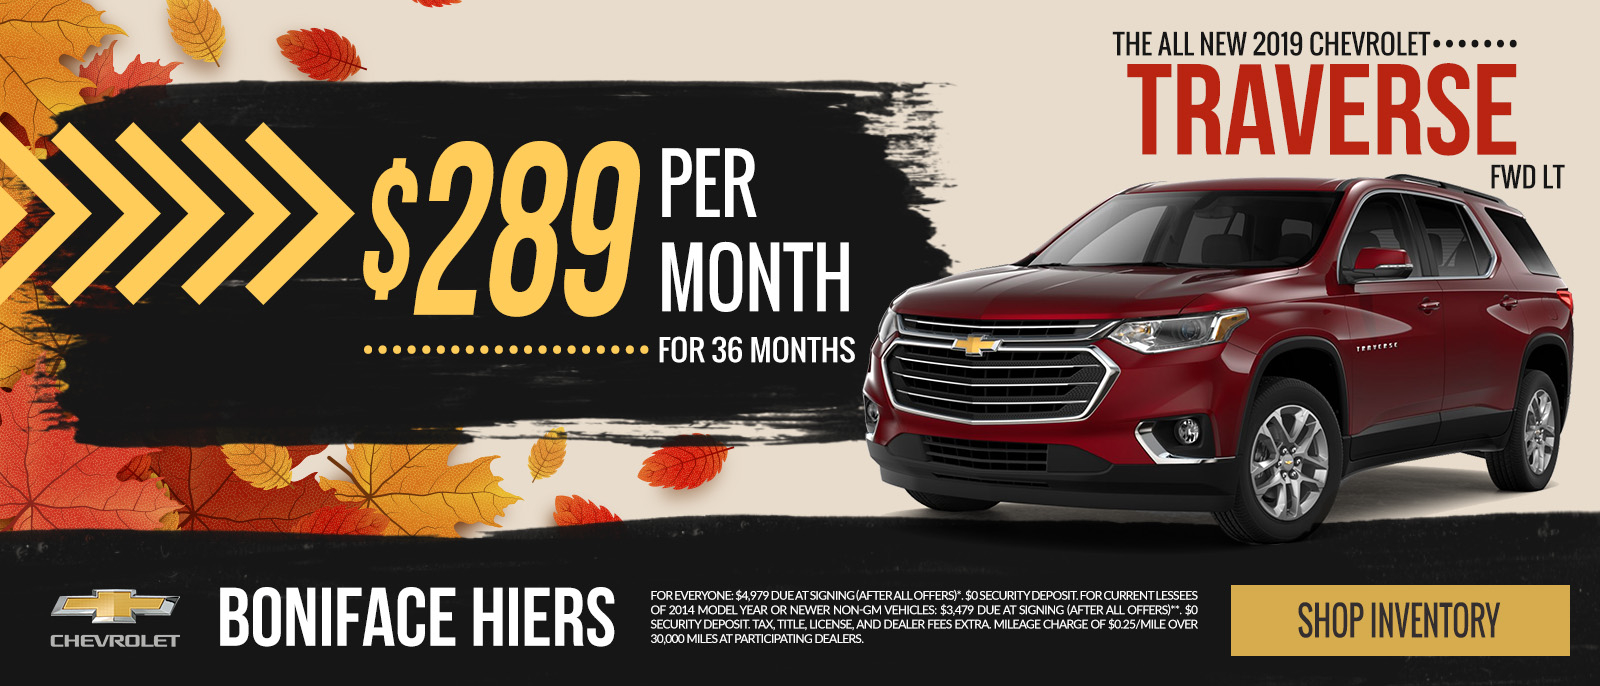 2019 CHEVROLET Traverse FWD LT - Ultra Low-Mileage Lease for Qualified Lessees. $269/month for 36 months.